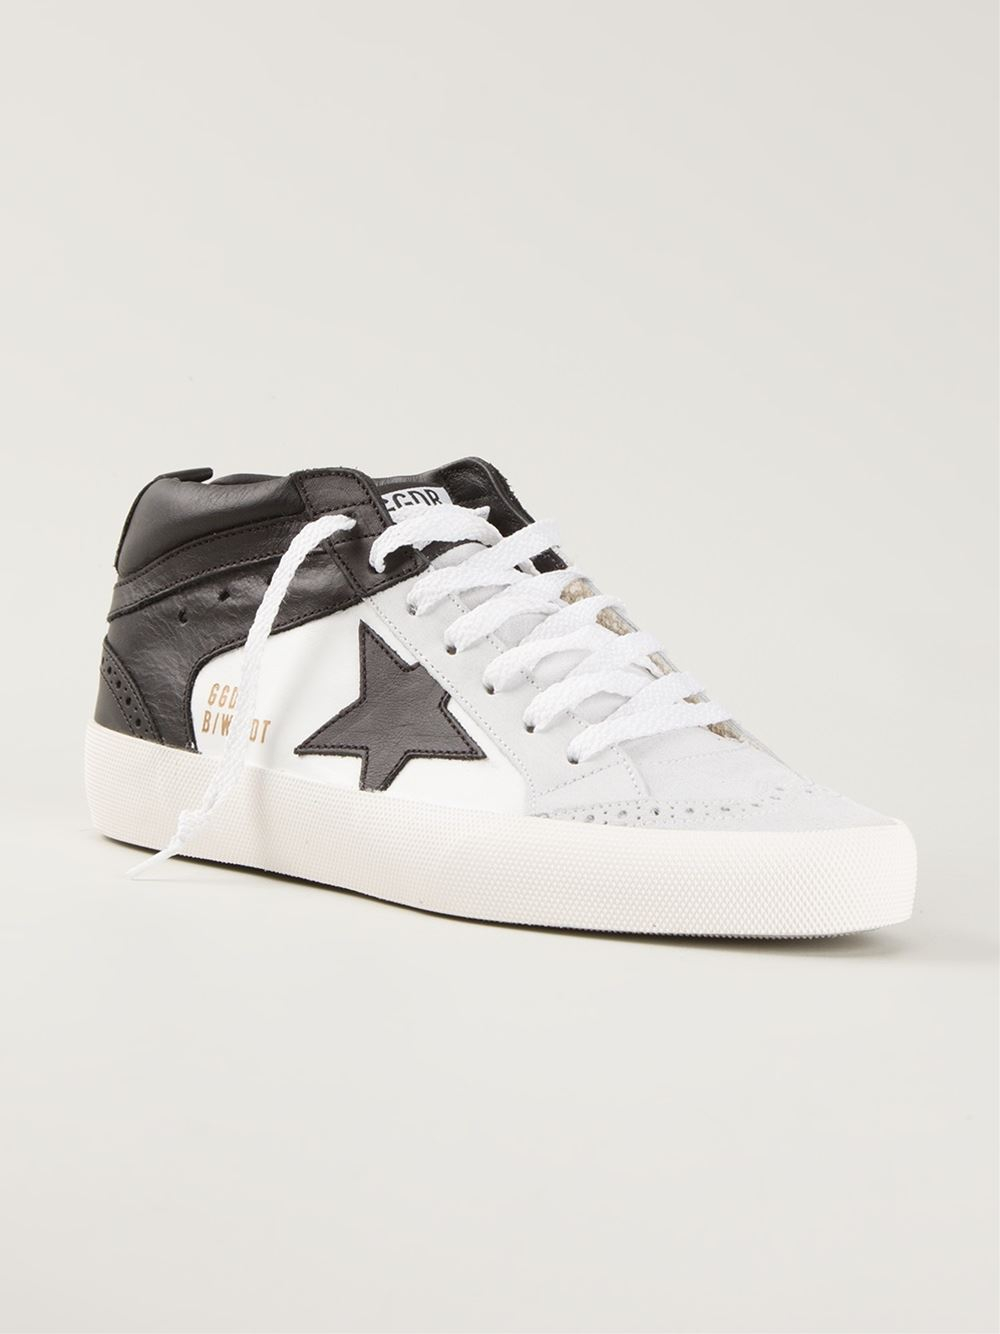 ccbfa4abec50 Lyst - Golden Goose Deluxe Brand  Mid Star Limited Edition  Sneakers ...